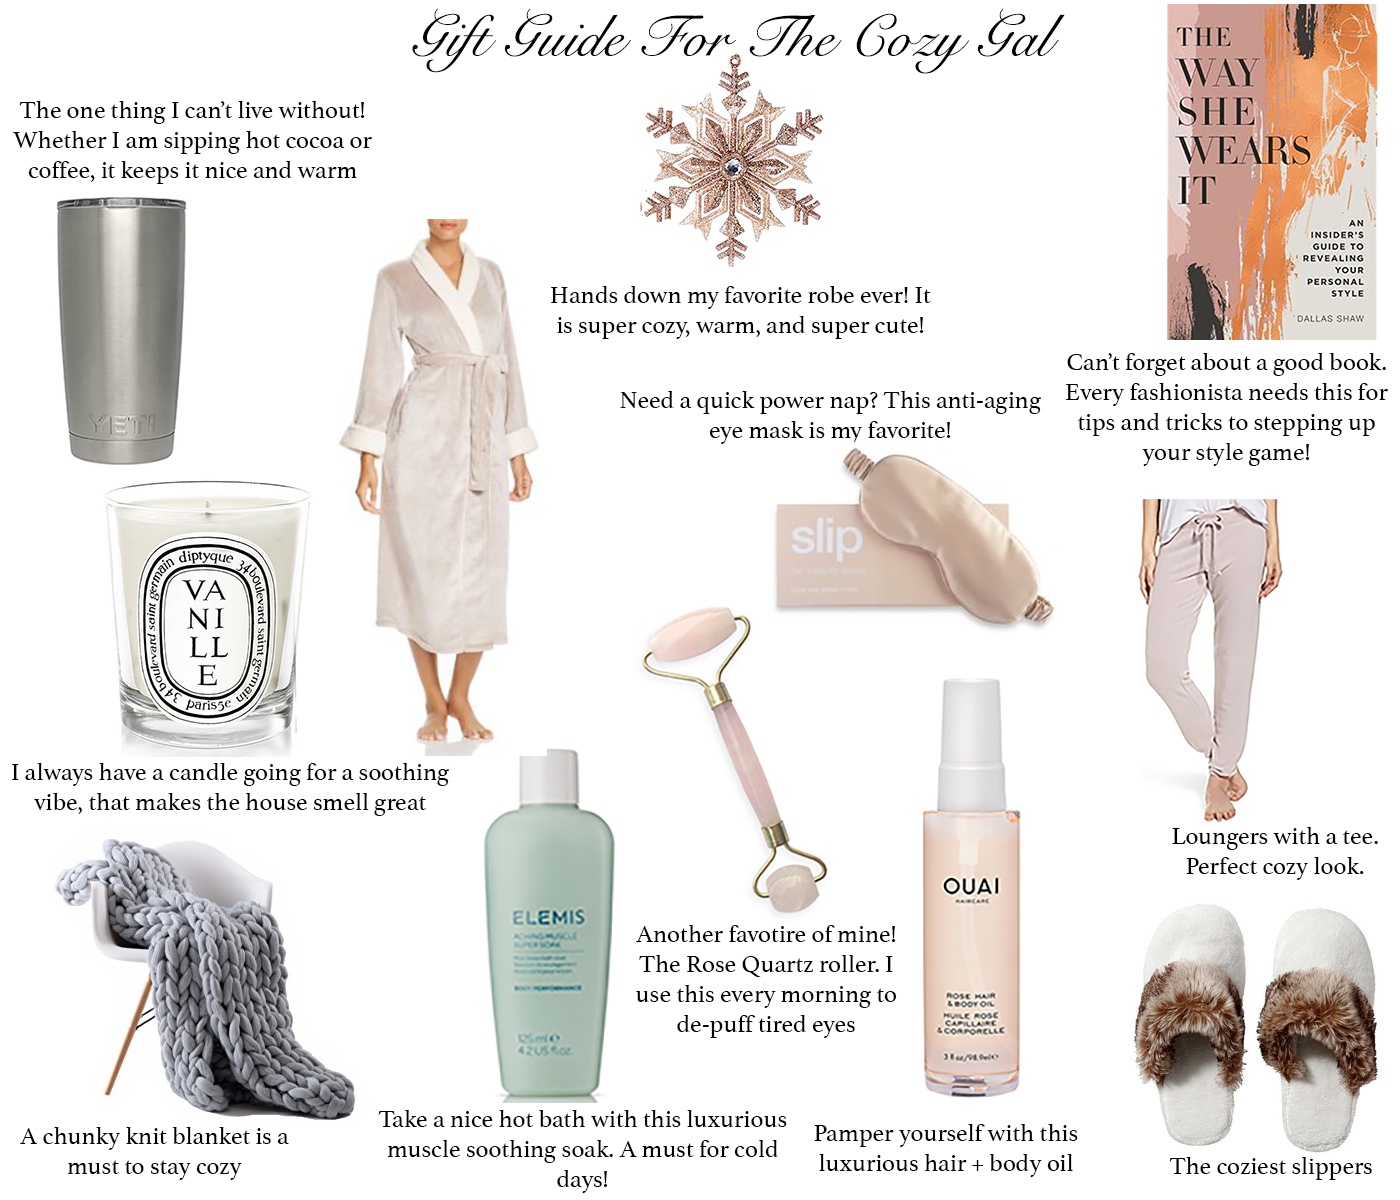 Gift Guide For The Cozy Gal